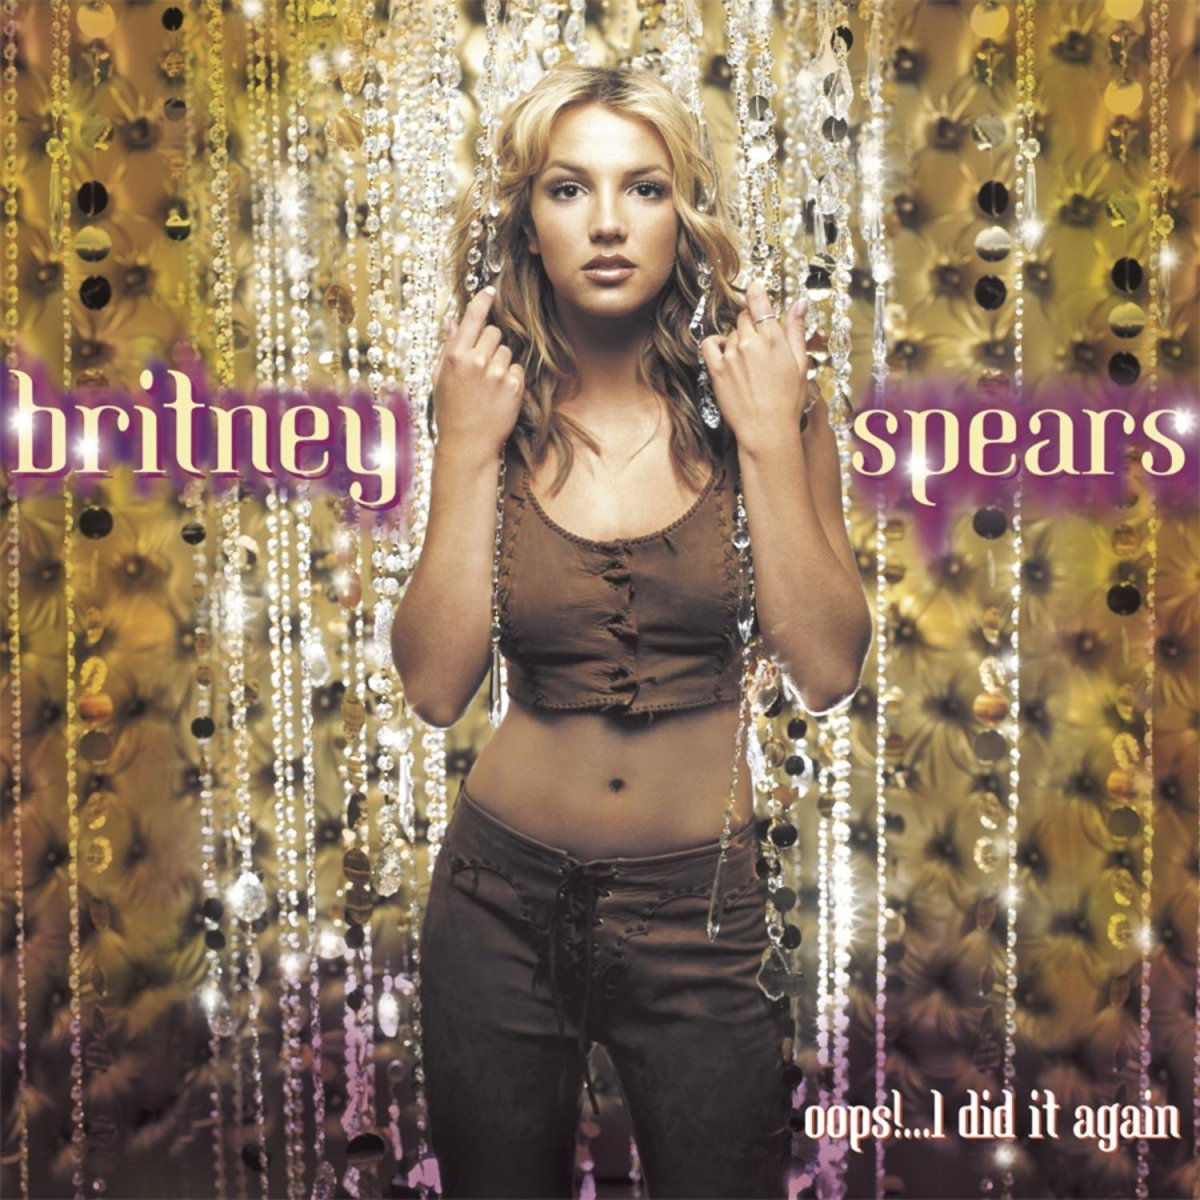 Review: 'Oops!... I Did It Again' by Britney Spears (CD, 2000)